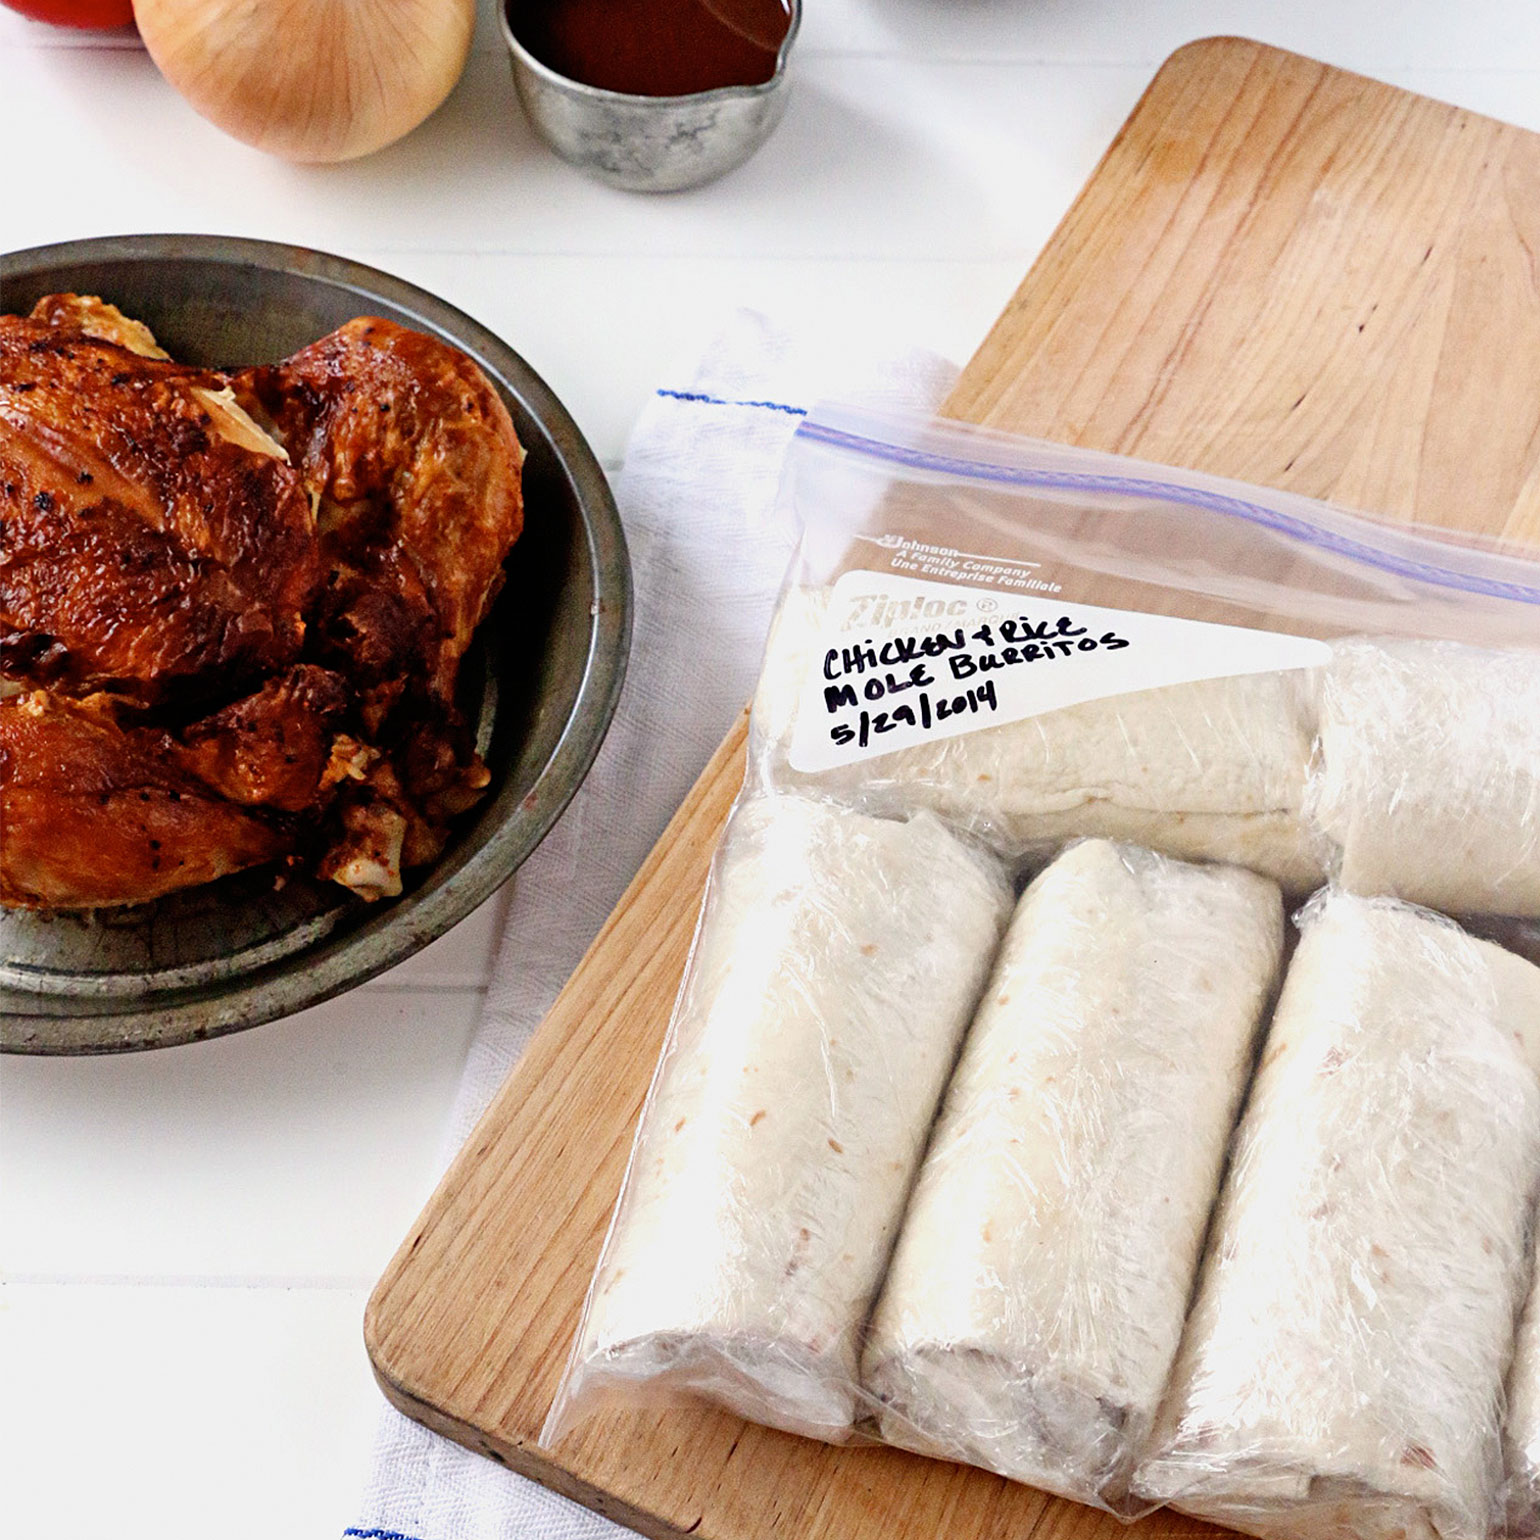 Roasted-Chicken-And-Rice-Mole-Burritos-Ziploc-Brand